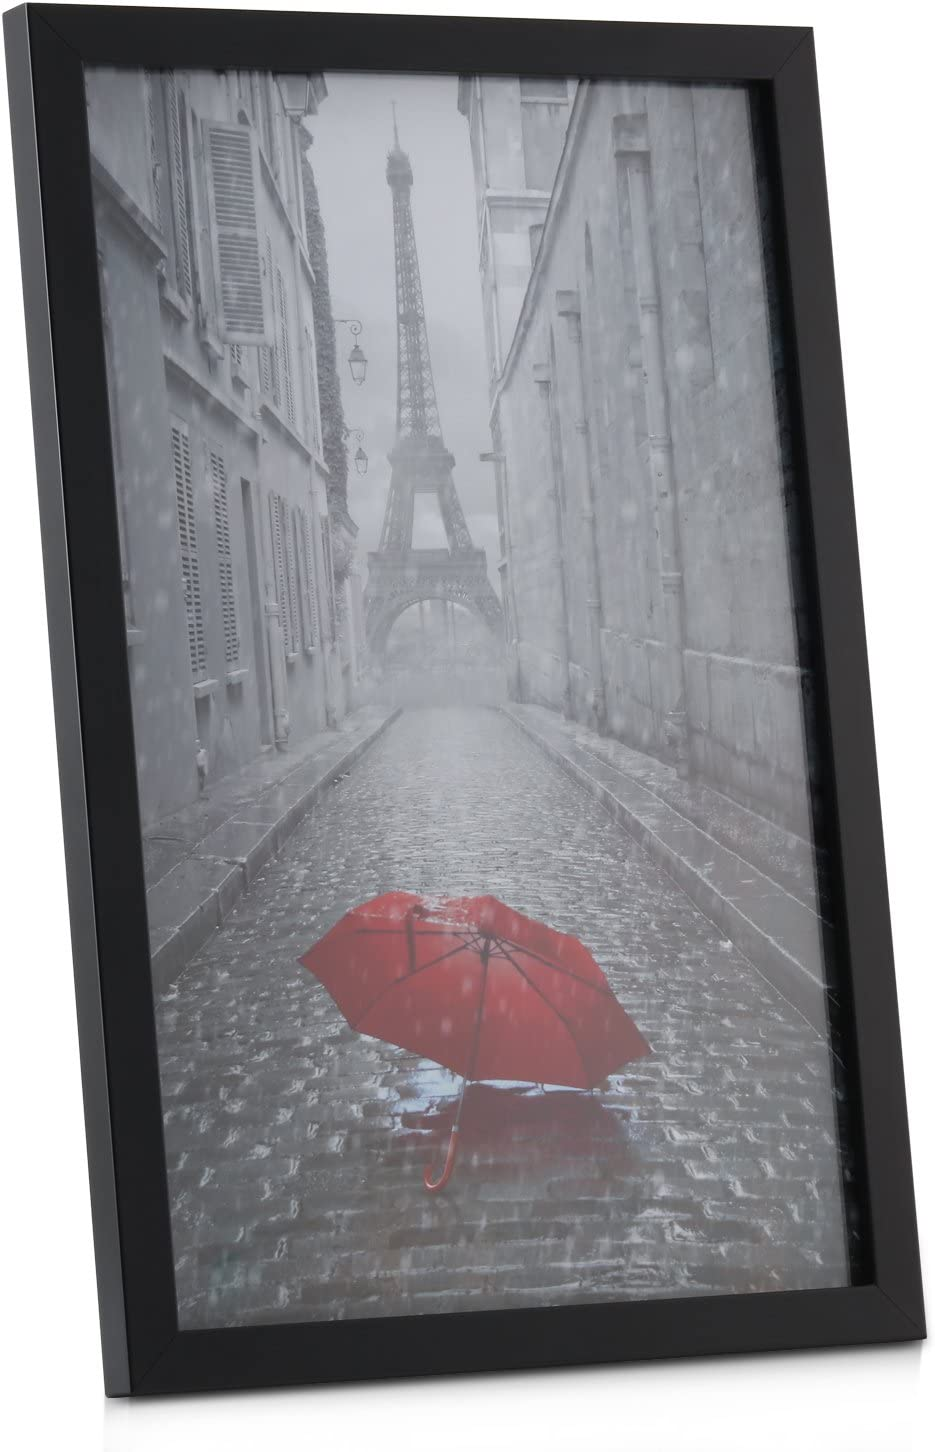 Tempered Glass Black Photo Poster Frame ONE WALL 2PCS 11x17 Picture Frame Wall Mounting Material Included